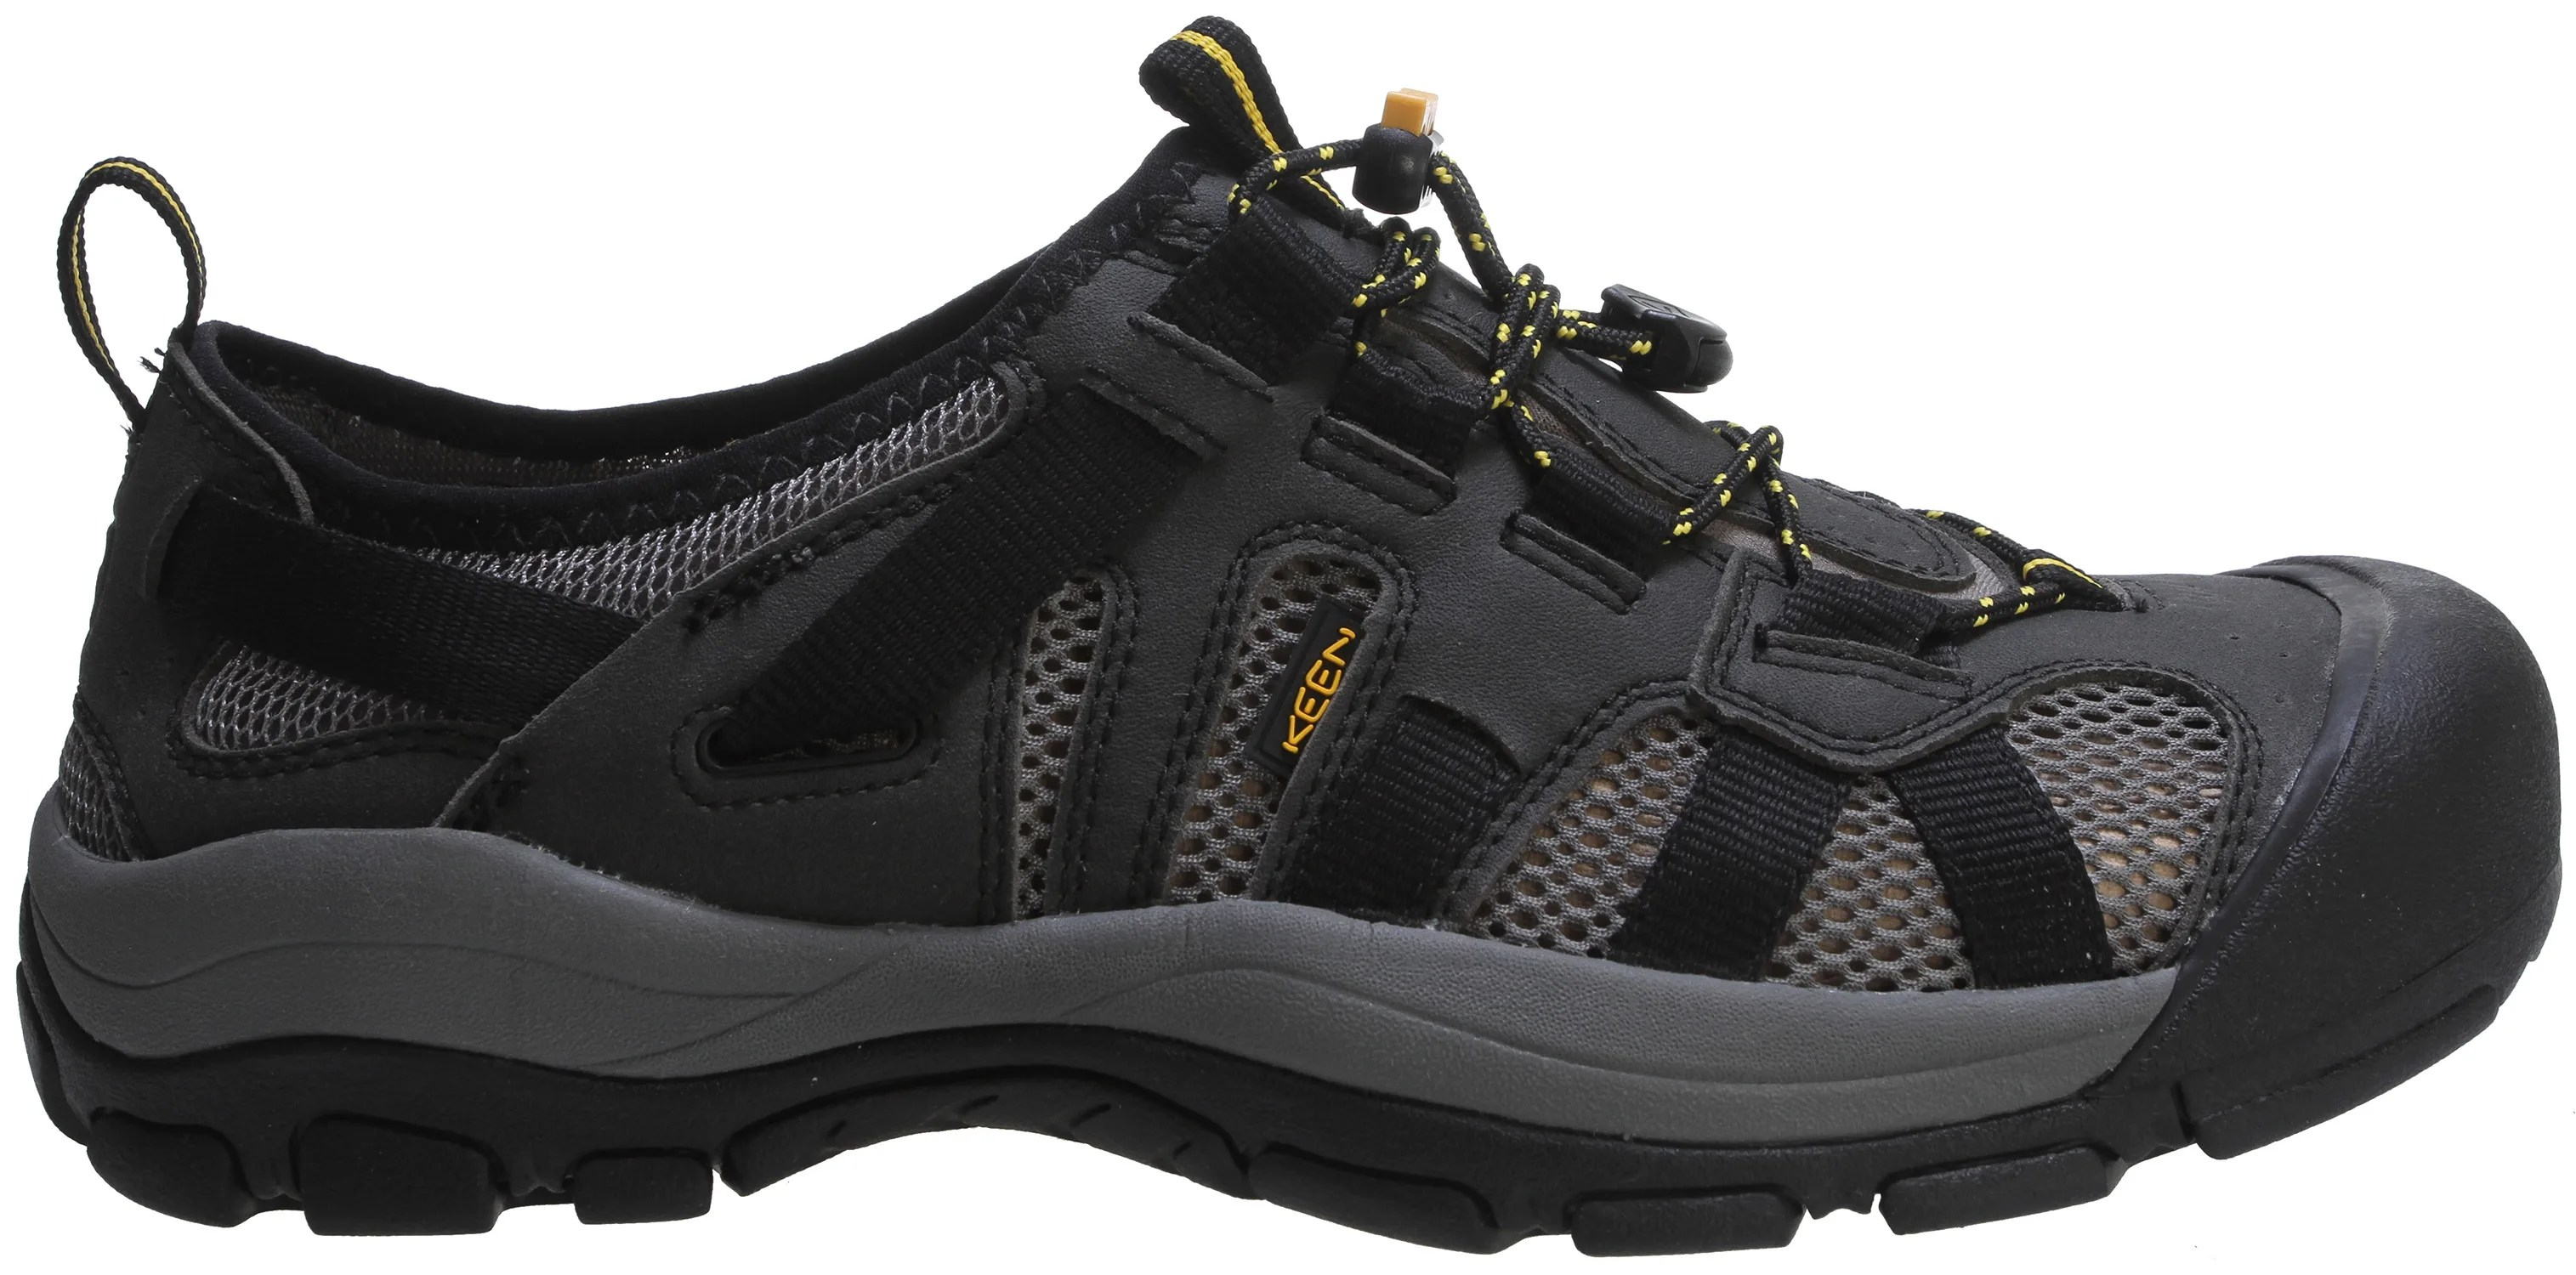 Keen Water Shoes Sale